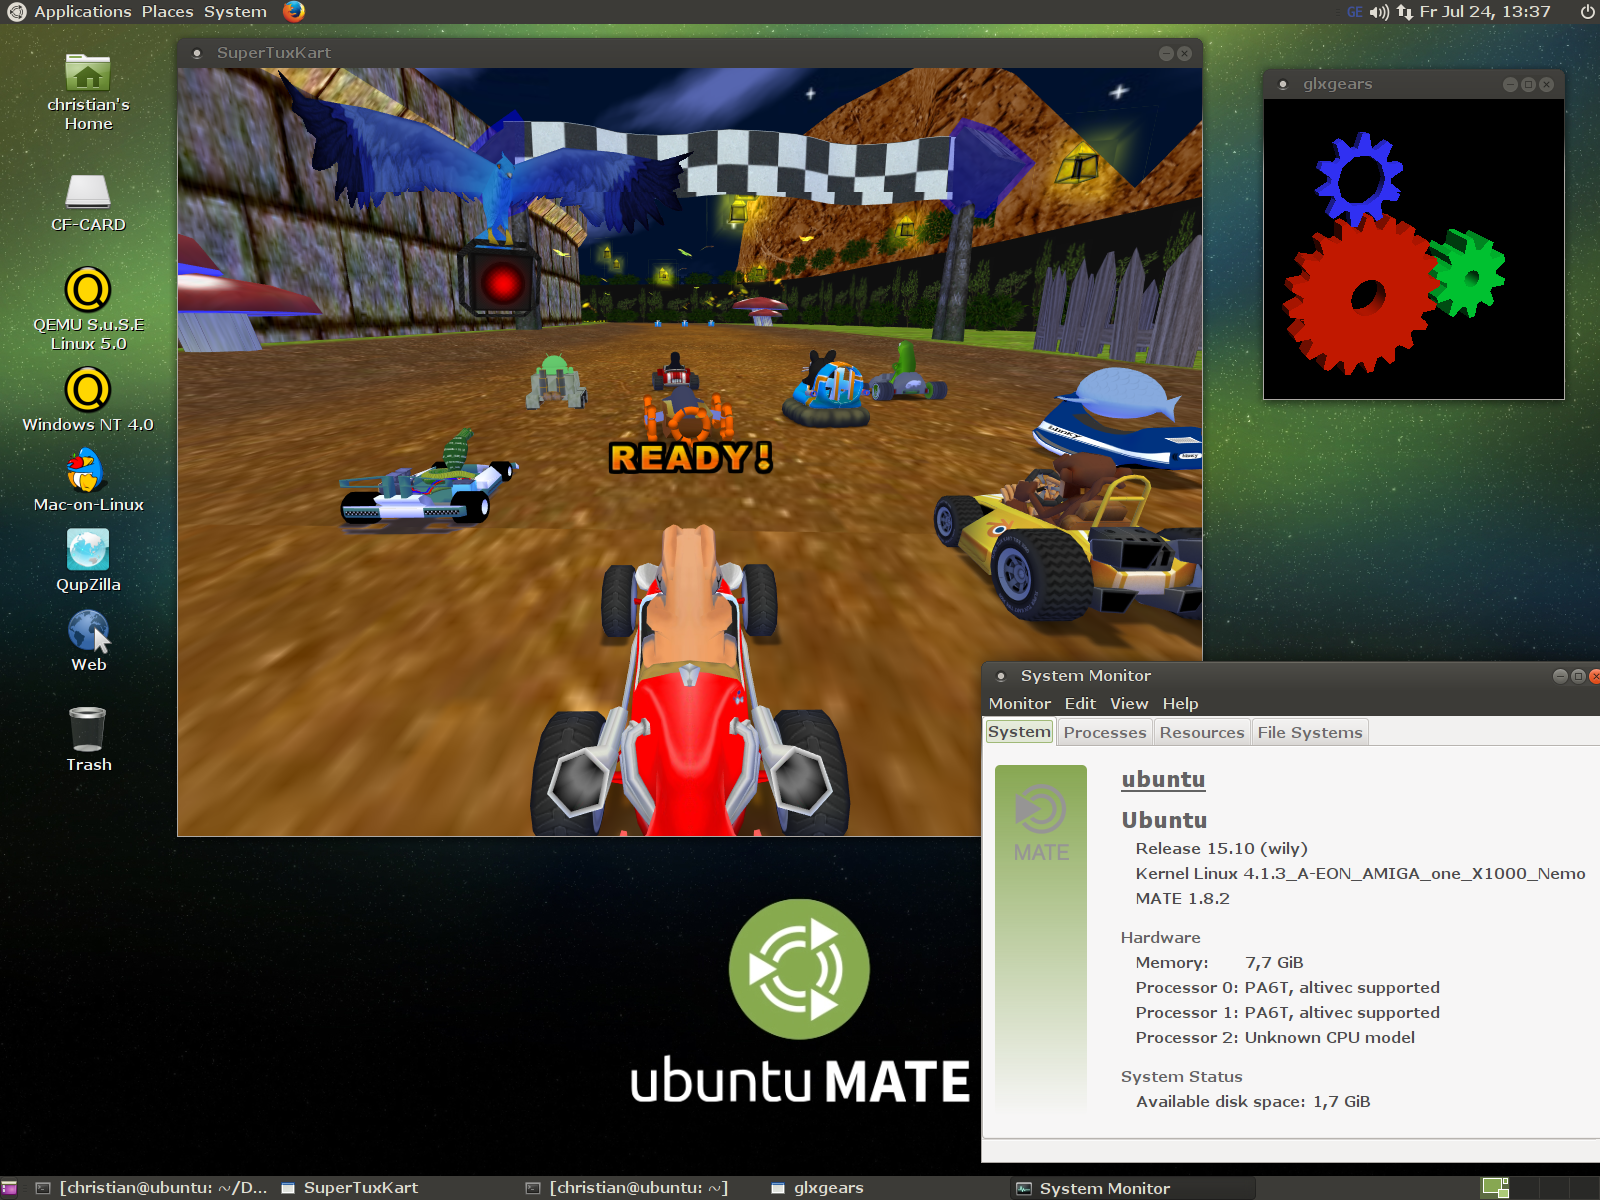 ubuntu_MATE_15.10_PowerPC_AMIGA_one_X1000_1.png